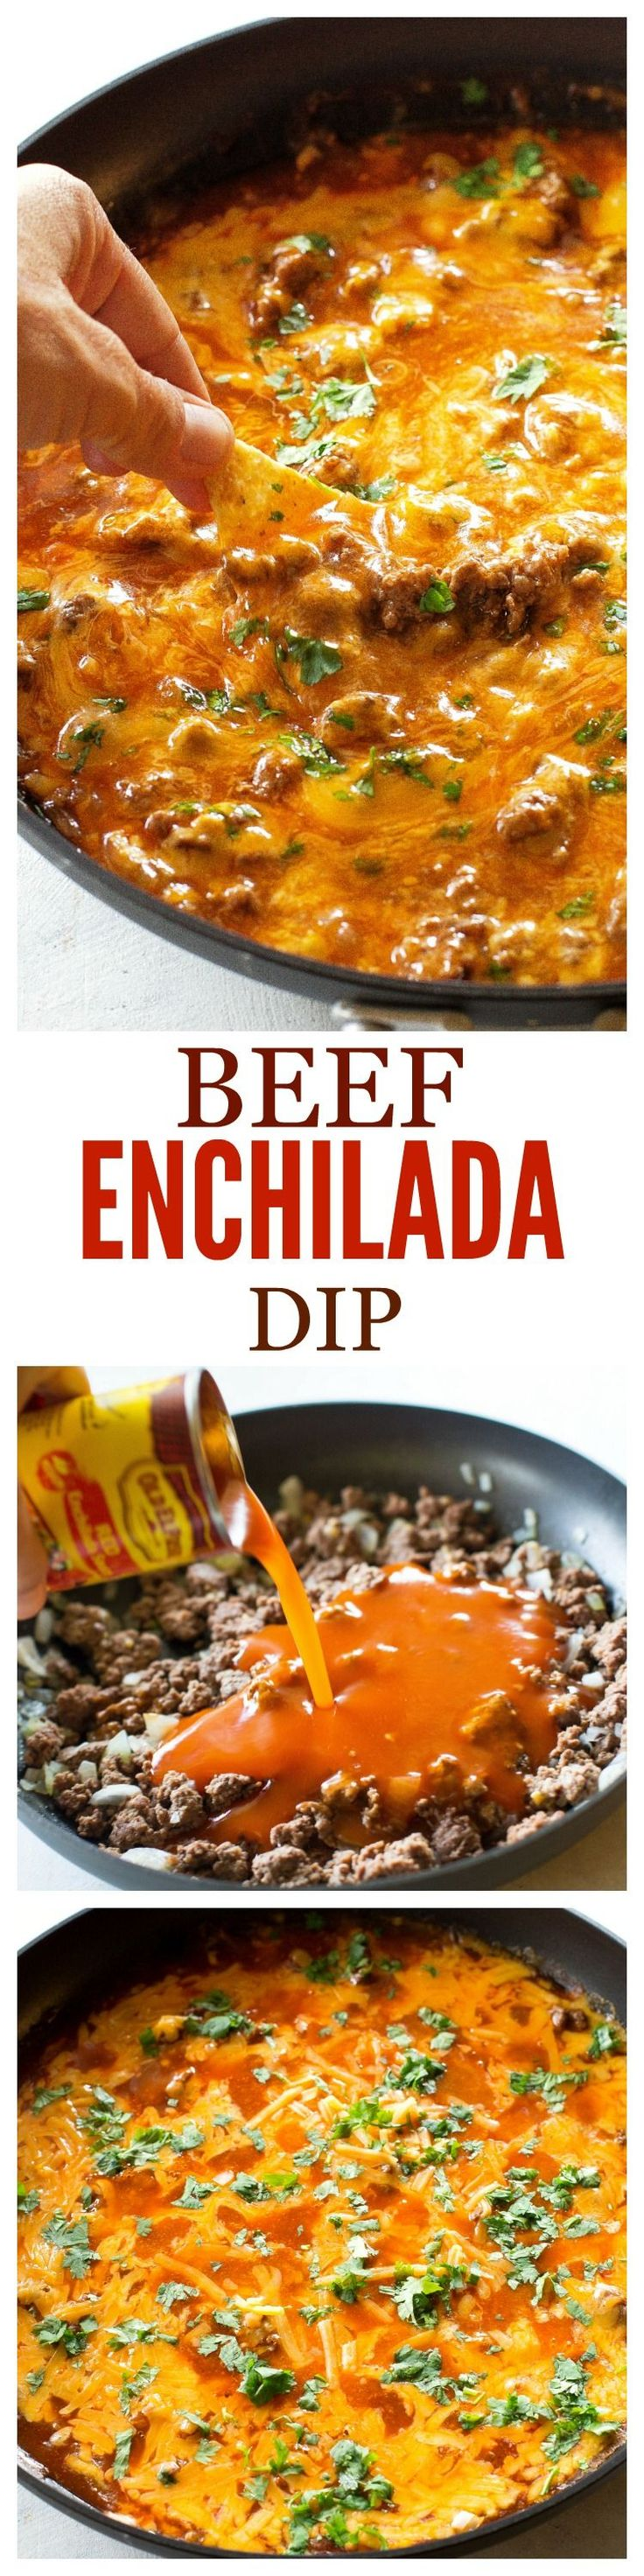 Easy dips recipes for chips